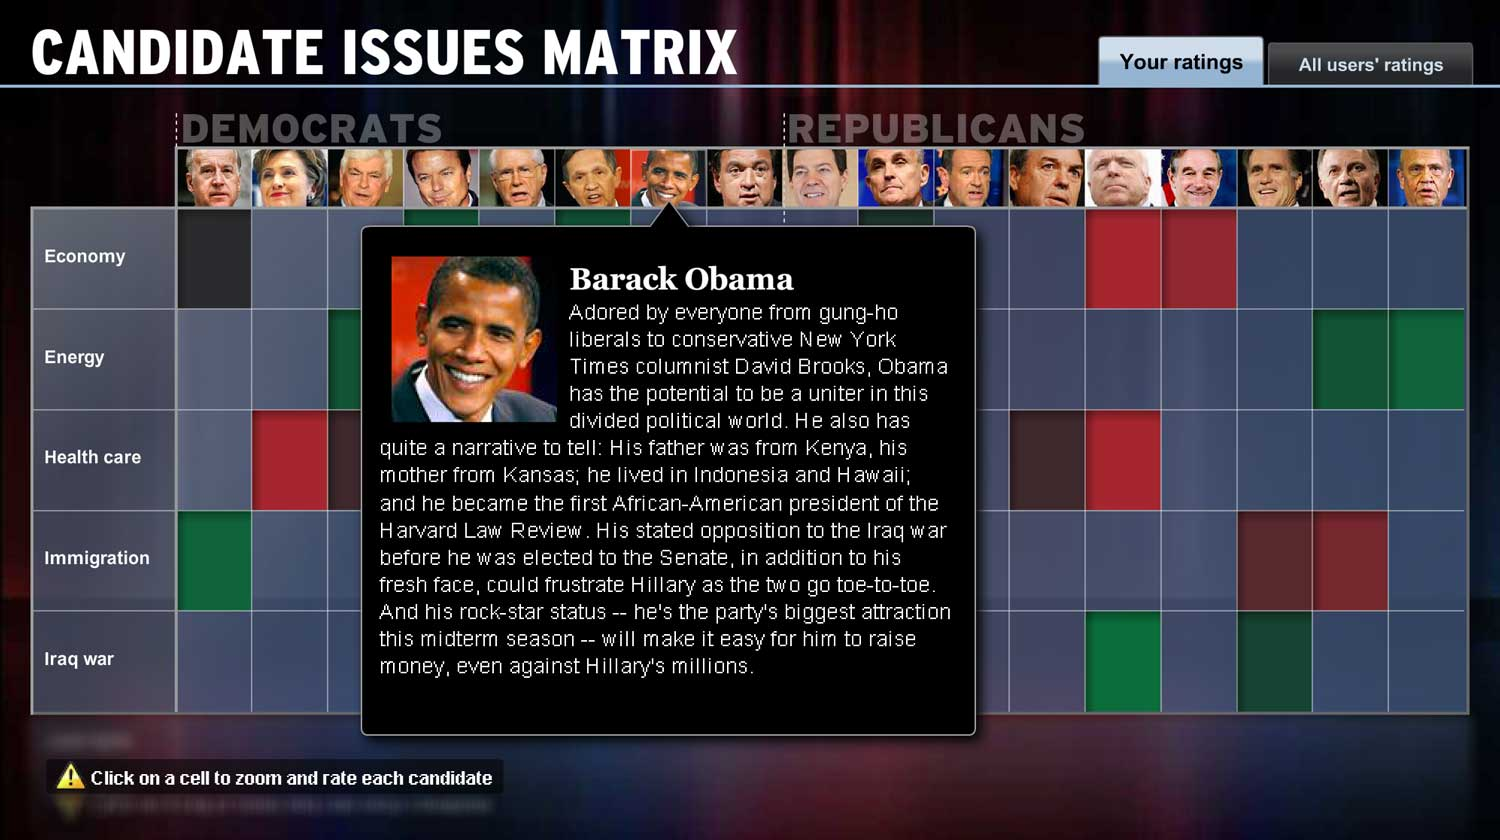 Candidates + Issues Matrix: Obama detail